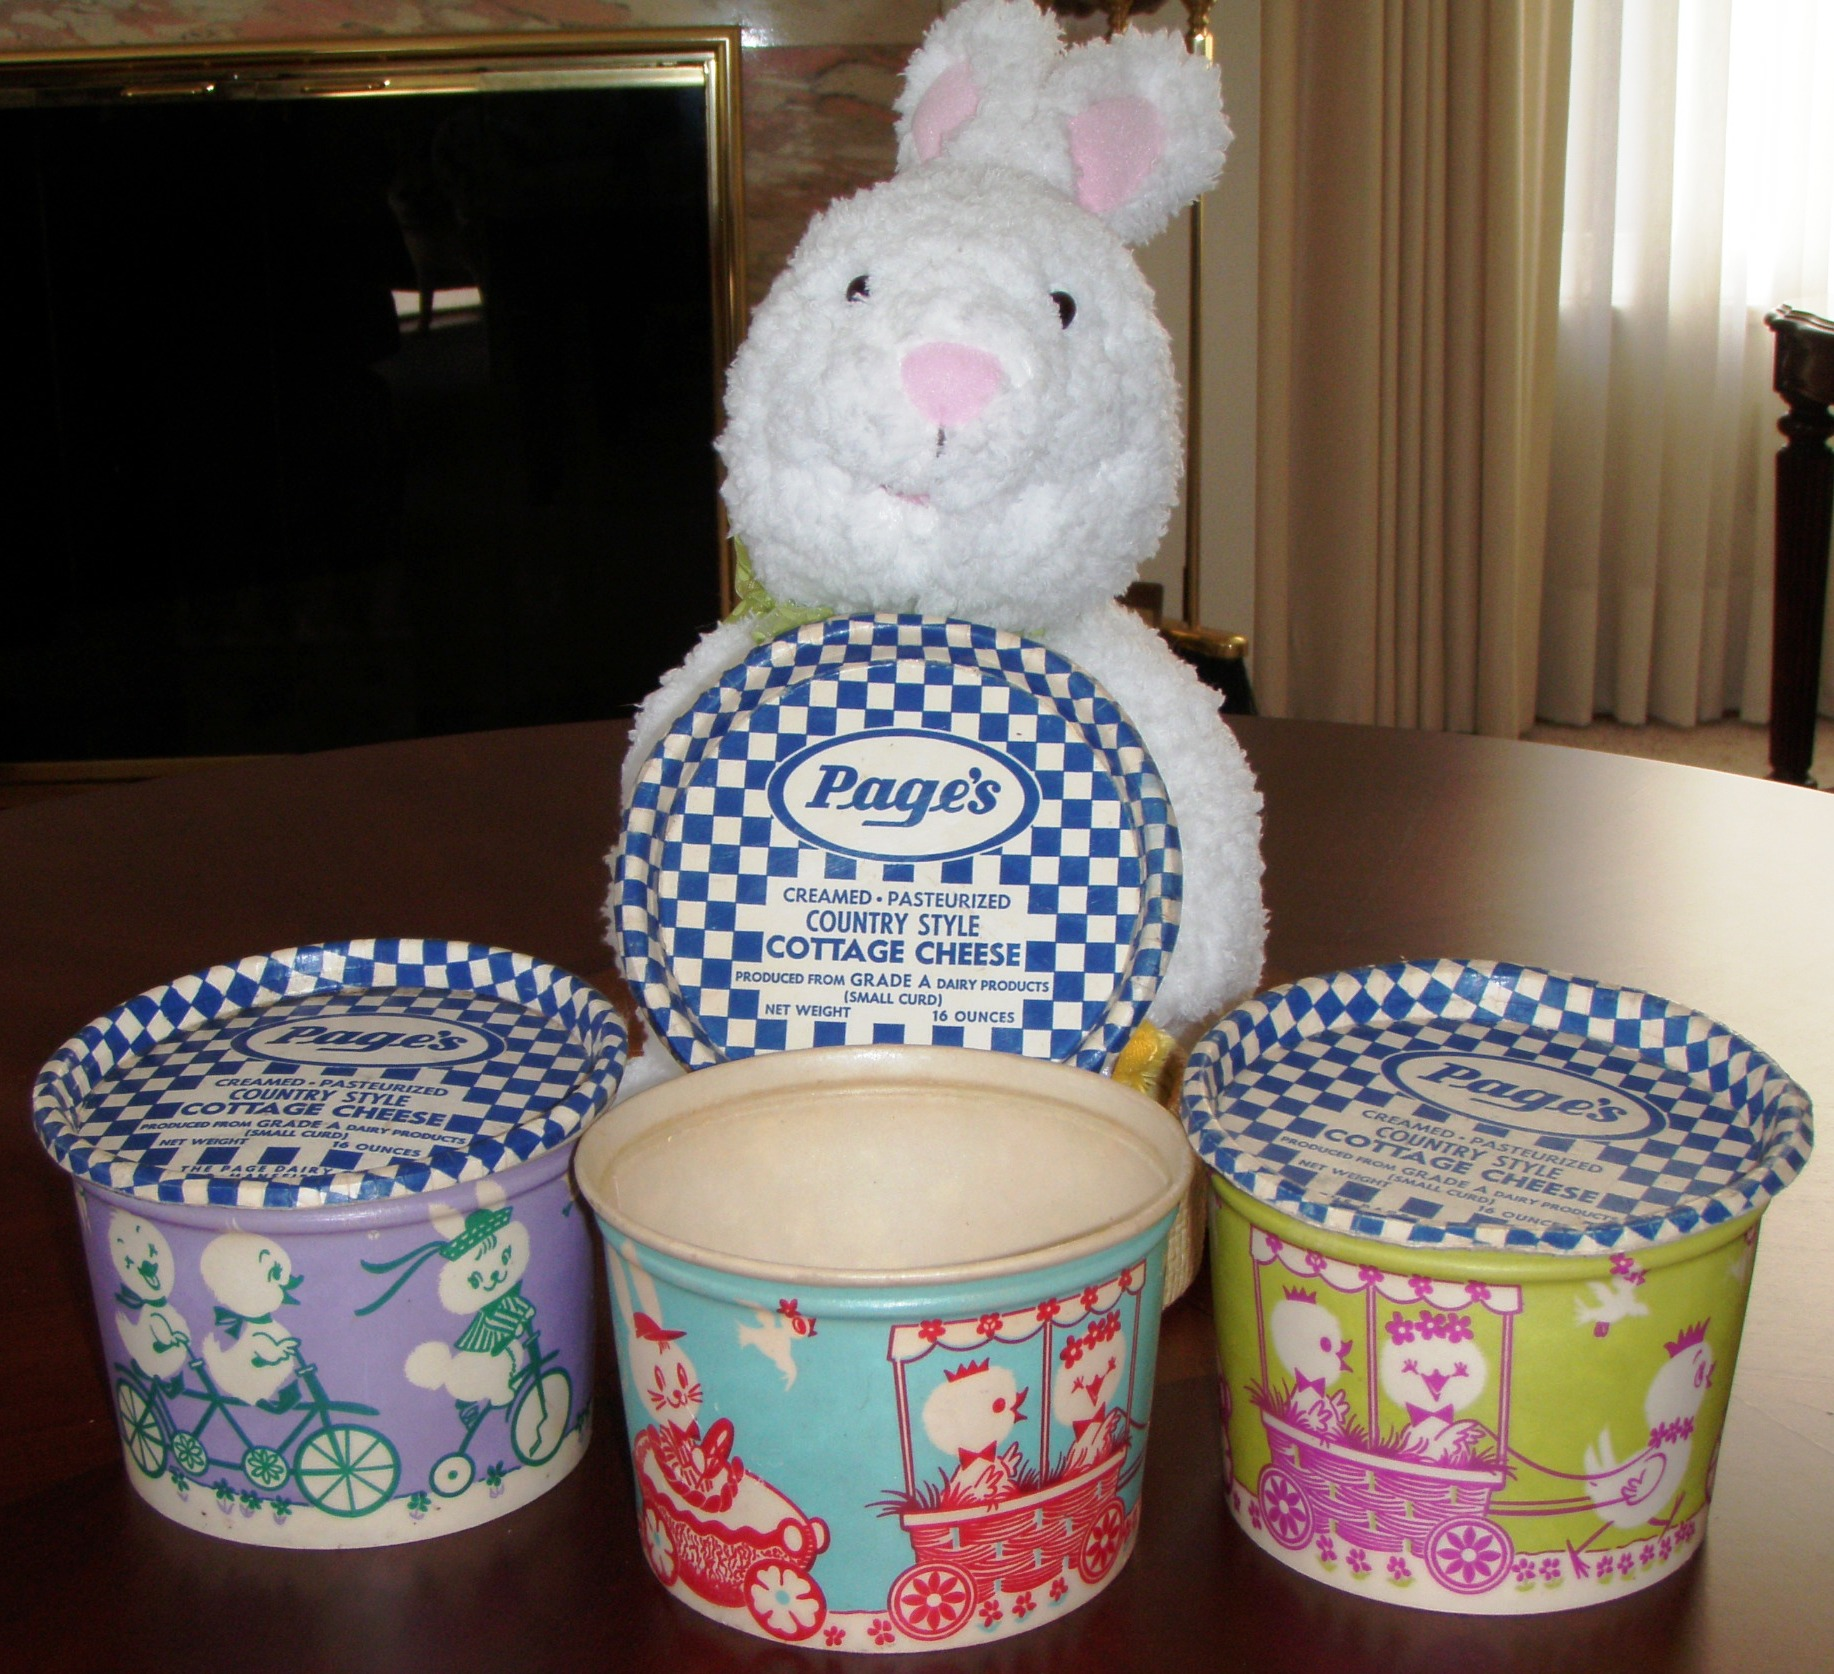 Page Dairy Easter Cottage Cheese Containers